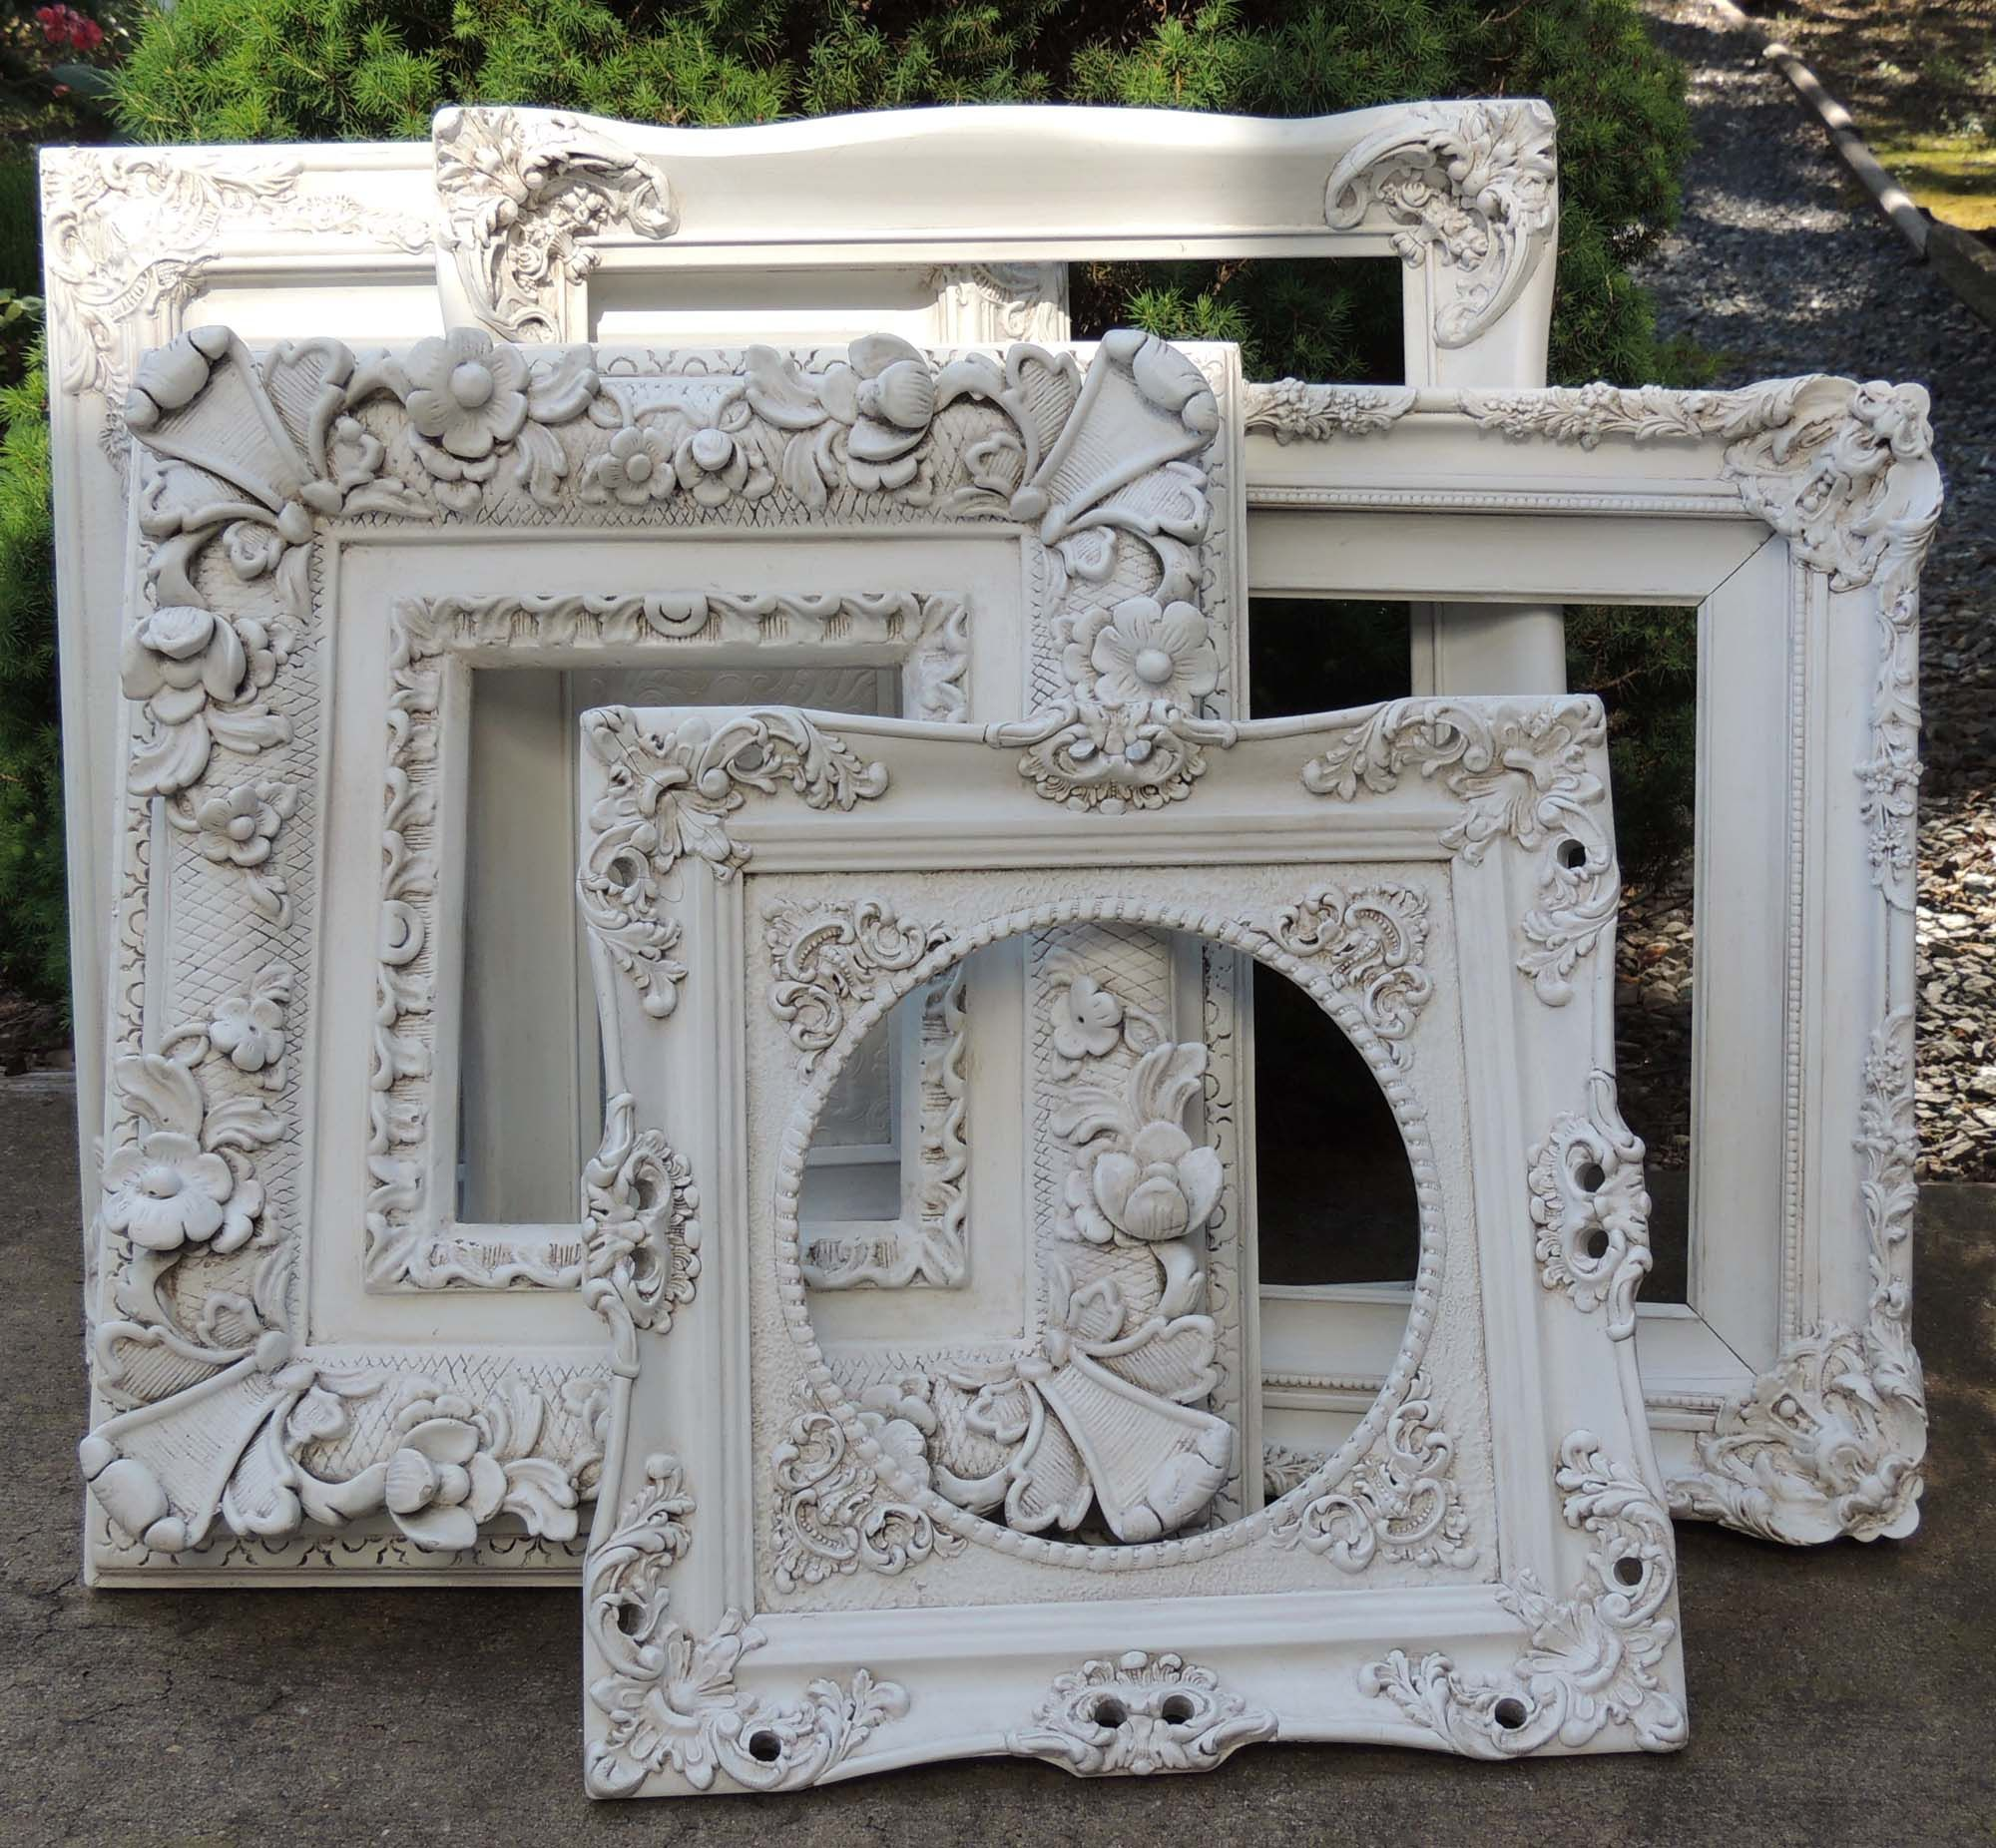 Beautiful Ornate Vintage Picture Frames Perfect For French Country, Cottage,